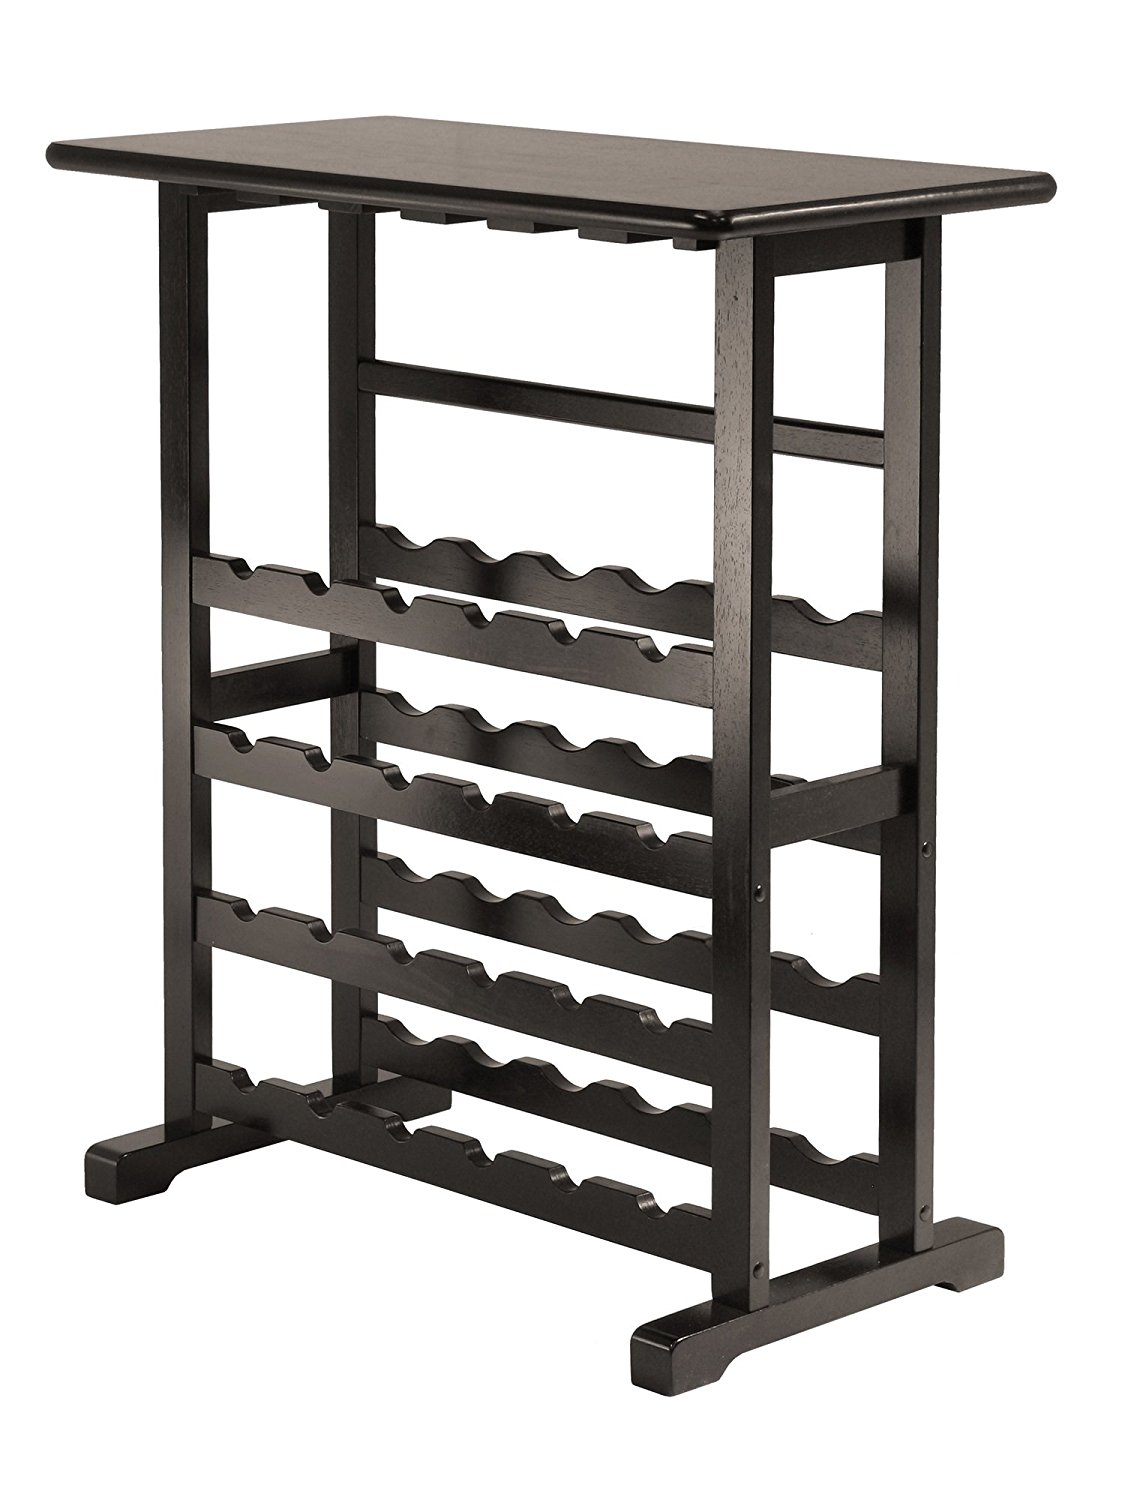 Winsome Wood Vinny 24-Bottle Wine Rack